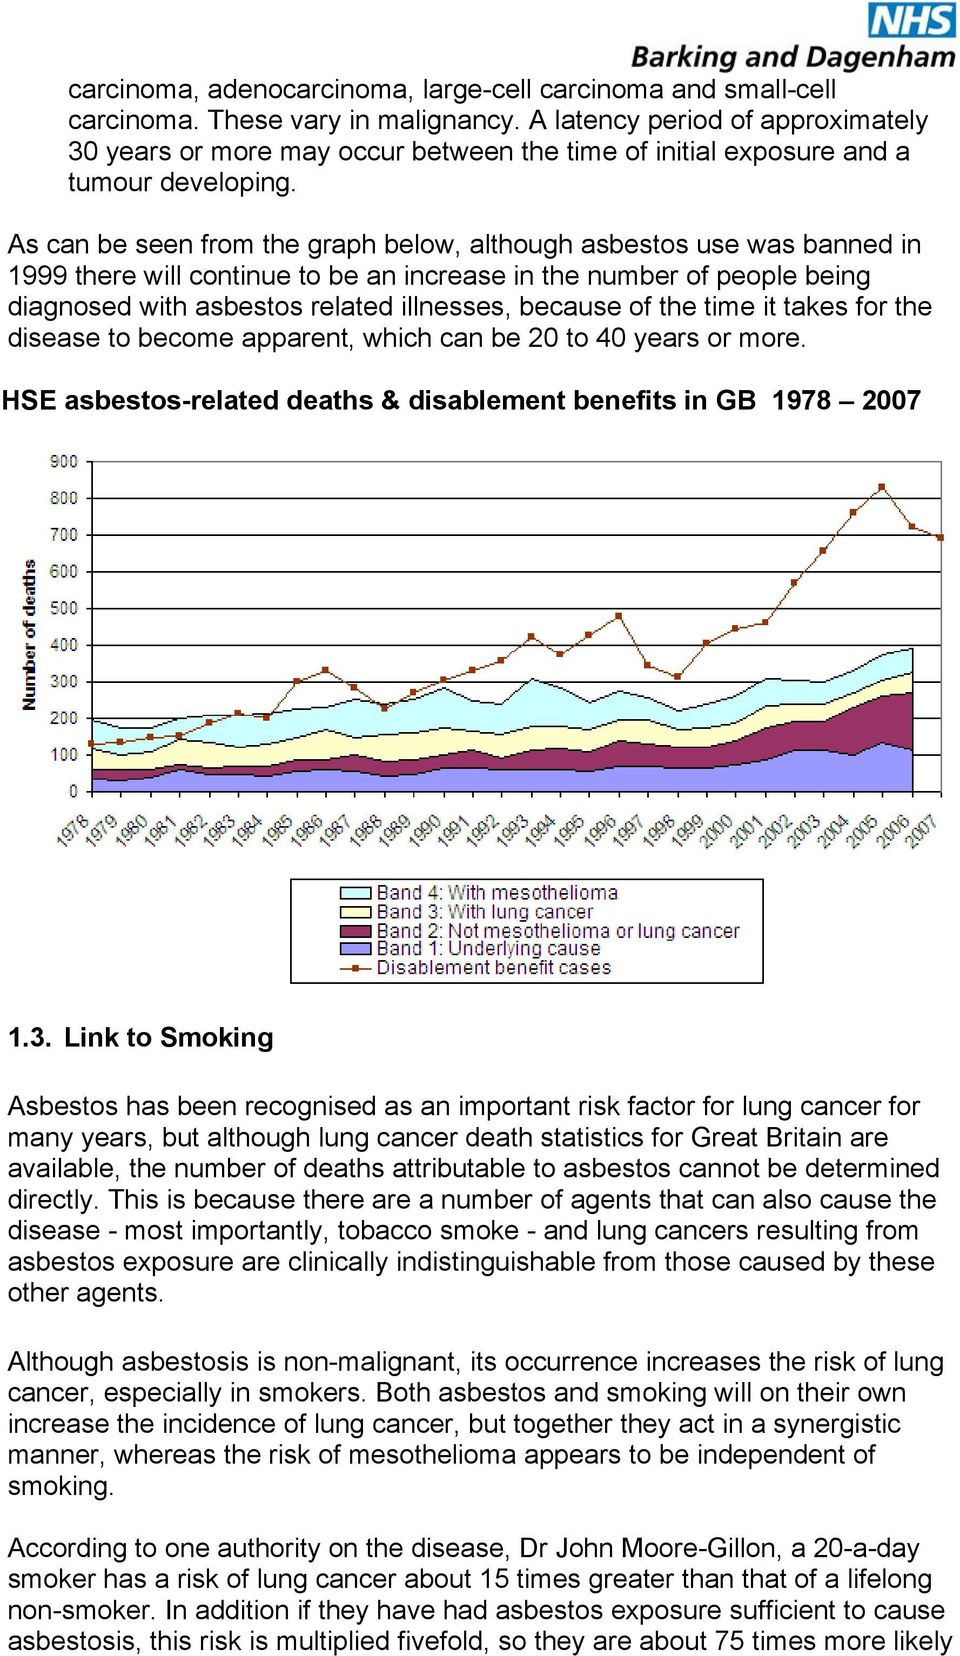 As can be seen from the graph below, although asbestos use was banned in 1999 there will continue to be an increase in the number of people being diagnosed with asbestos related illnesses, because of